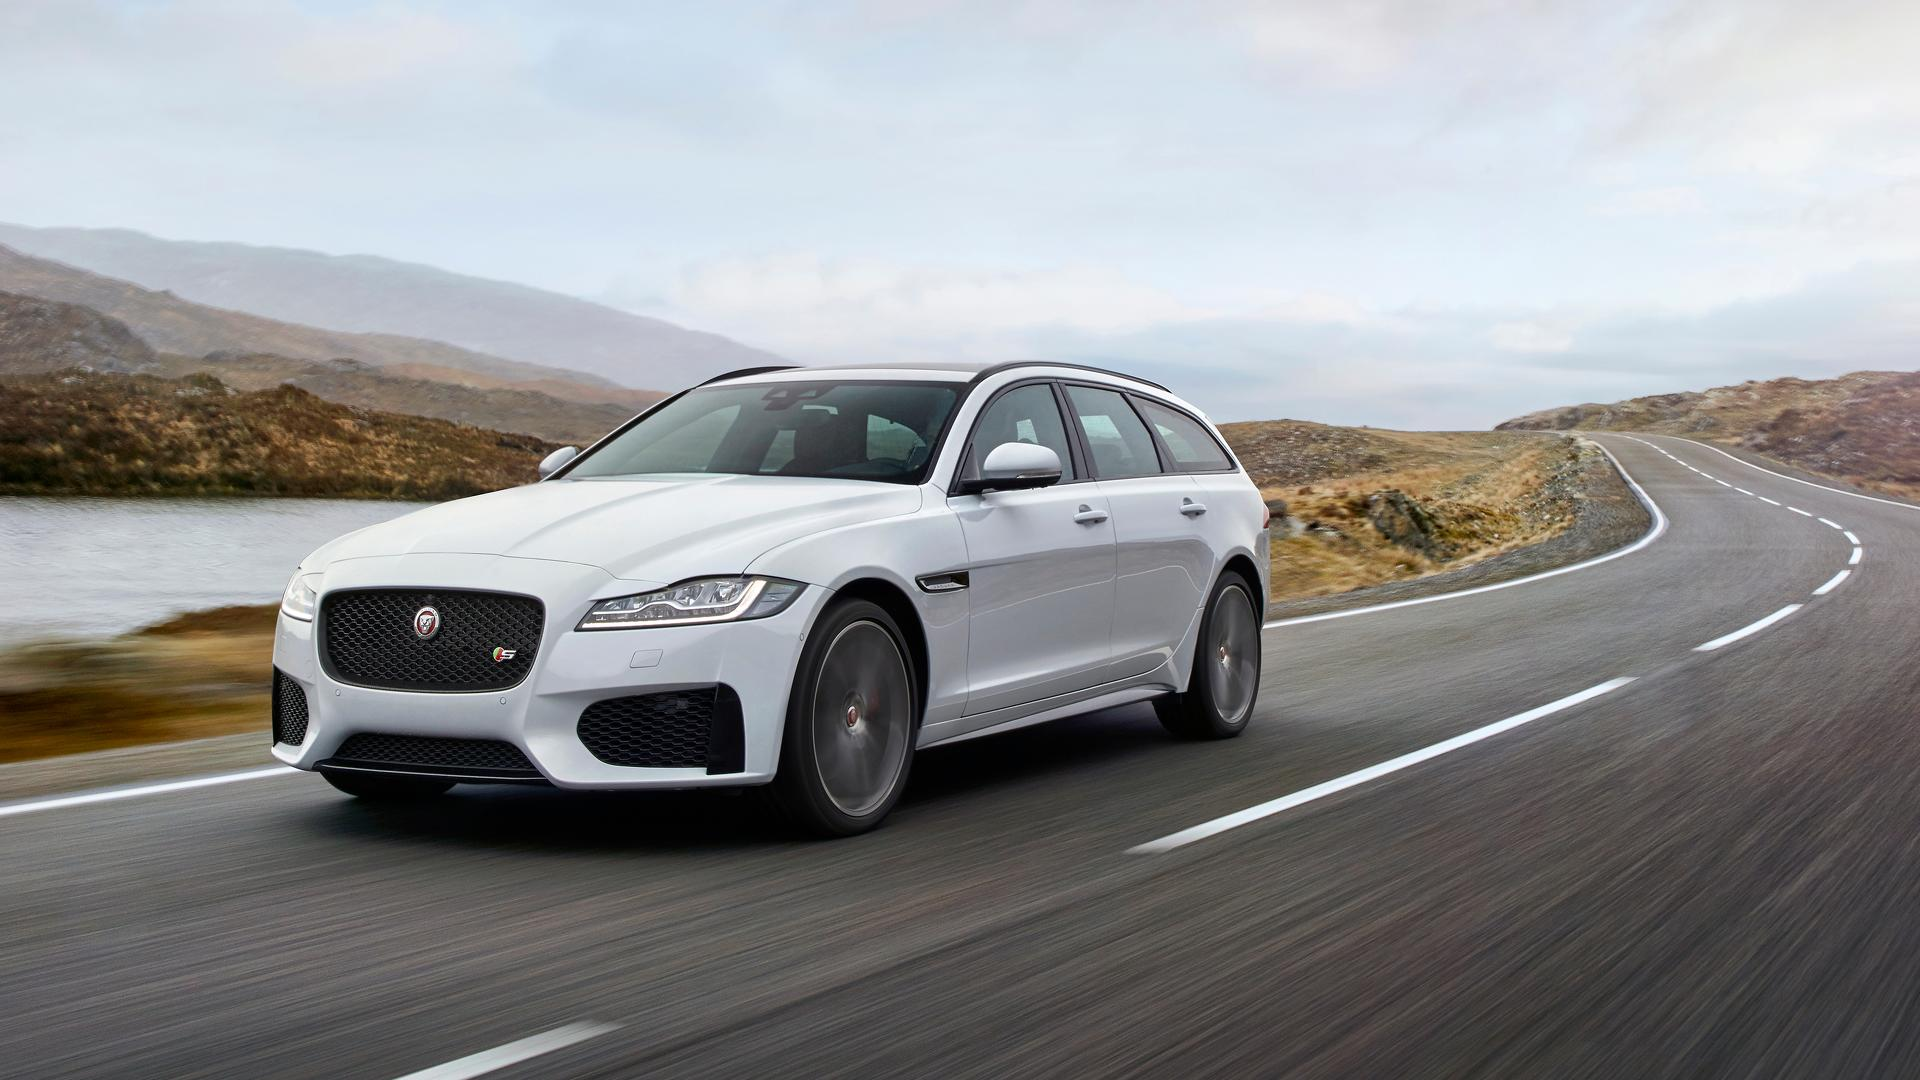 new jaguar xf sportbrake unveiled priced at 34 910 autodevot. Black Bedroom Furniture Sets. Home Design Ideas